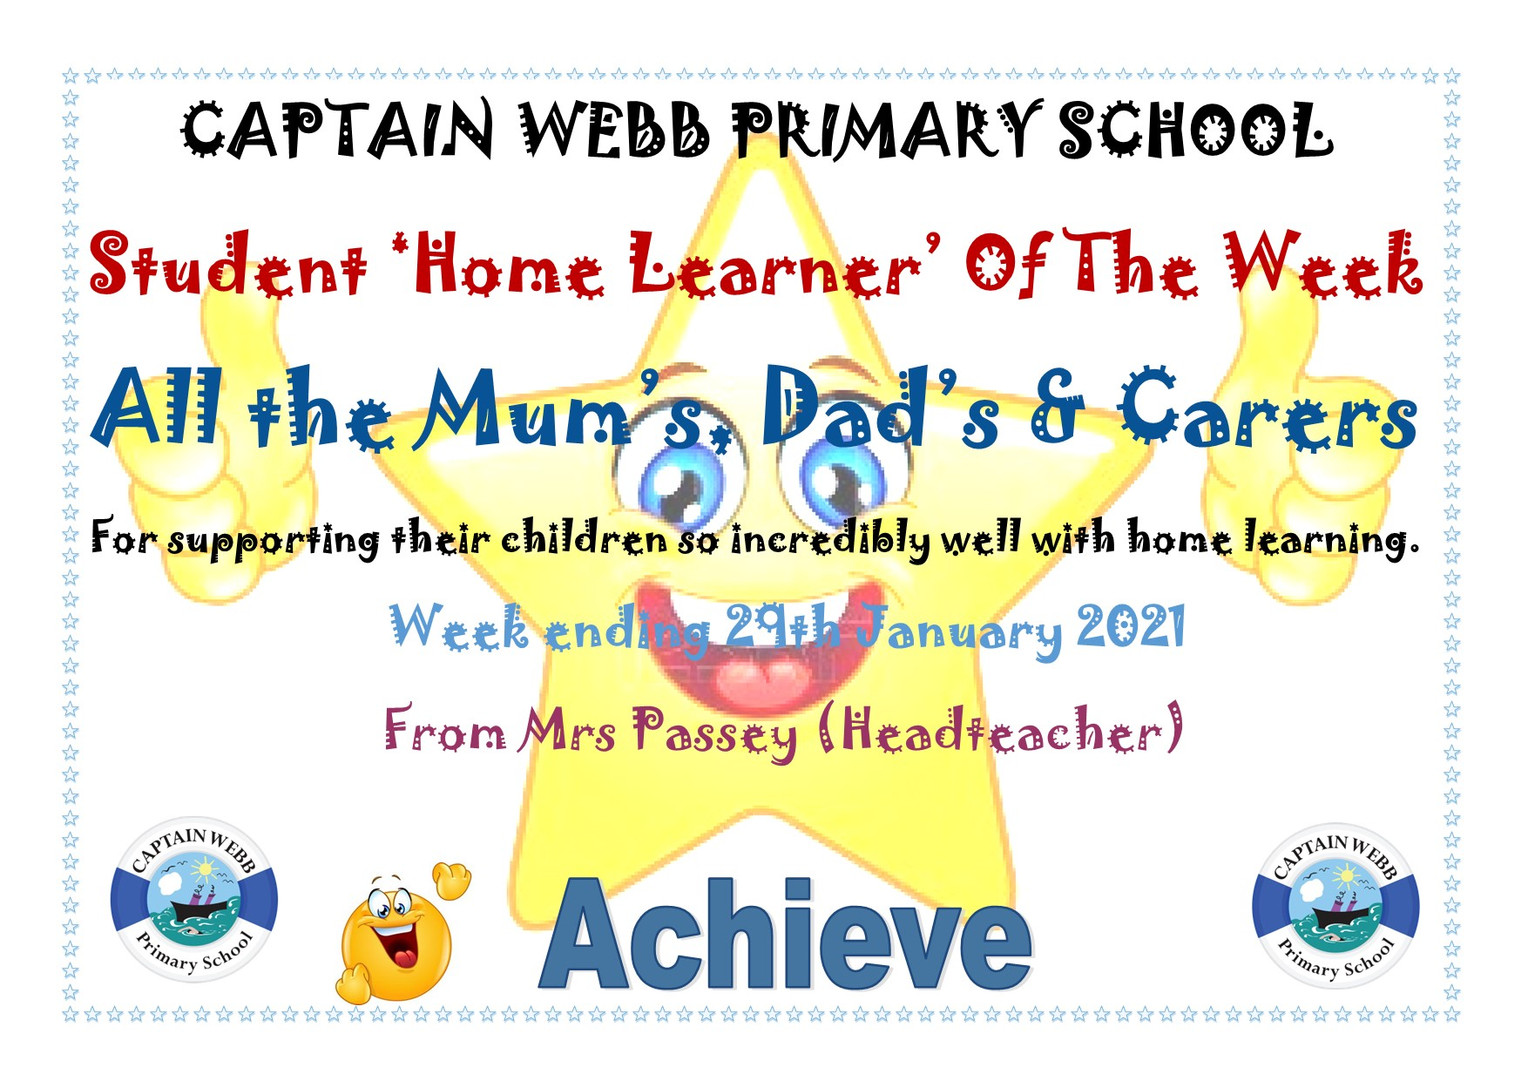 Student home learner of the week  CP.jpg